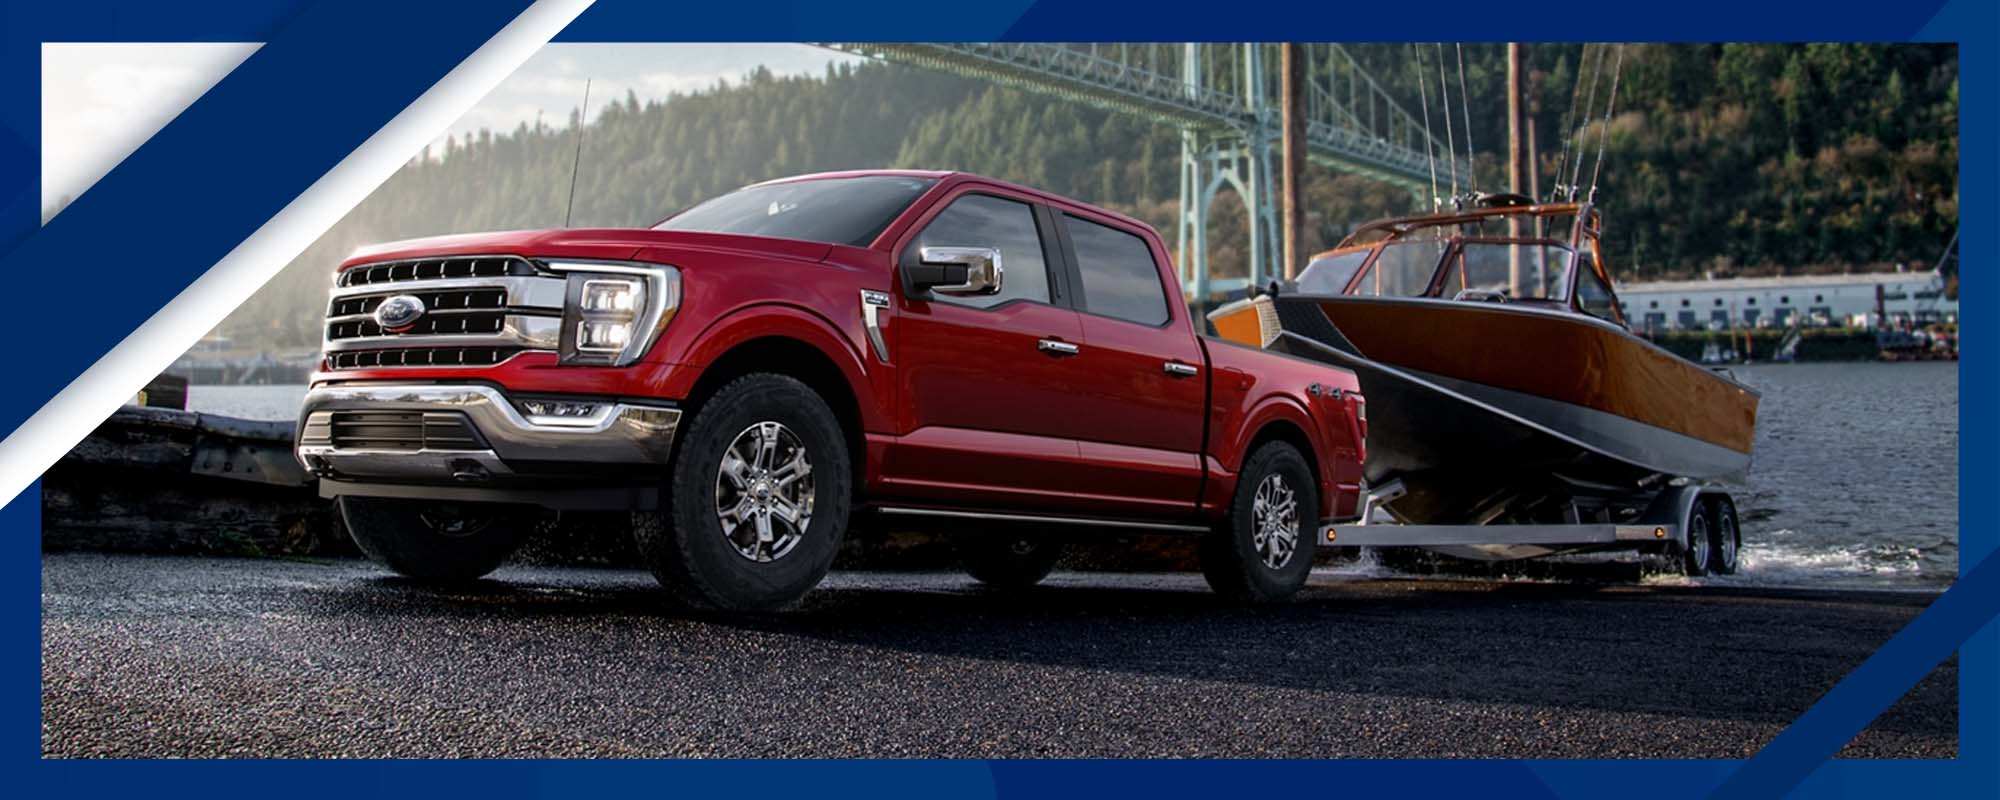 2021 Ford F-150 | ACE Ford, My Local Ford Dealership In NJ